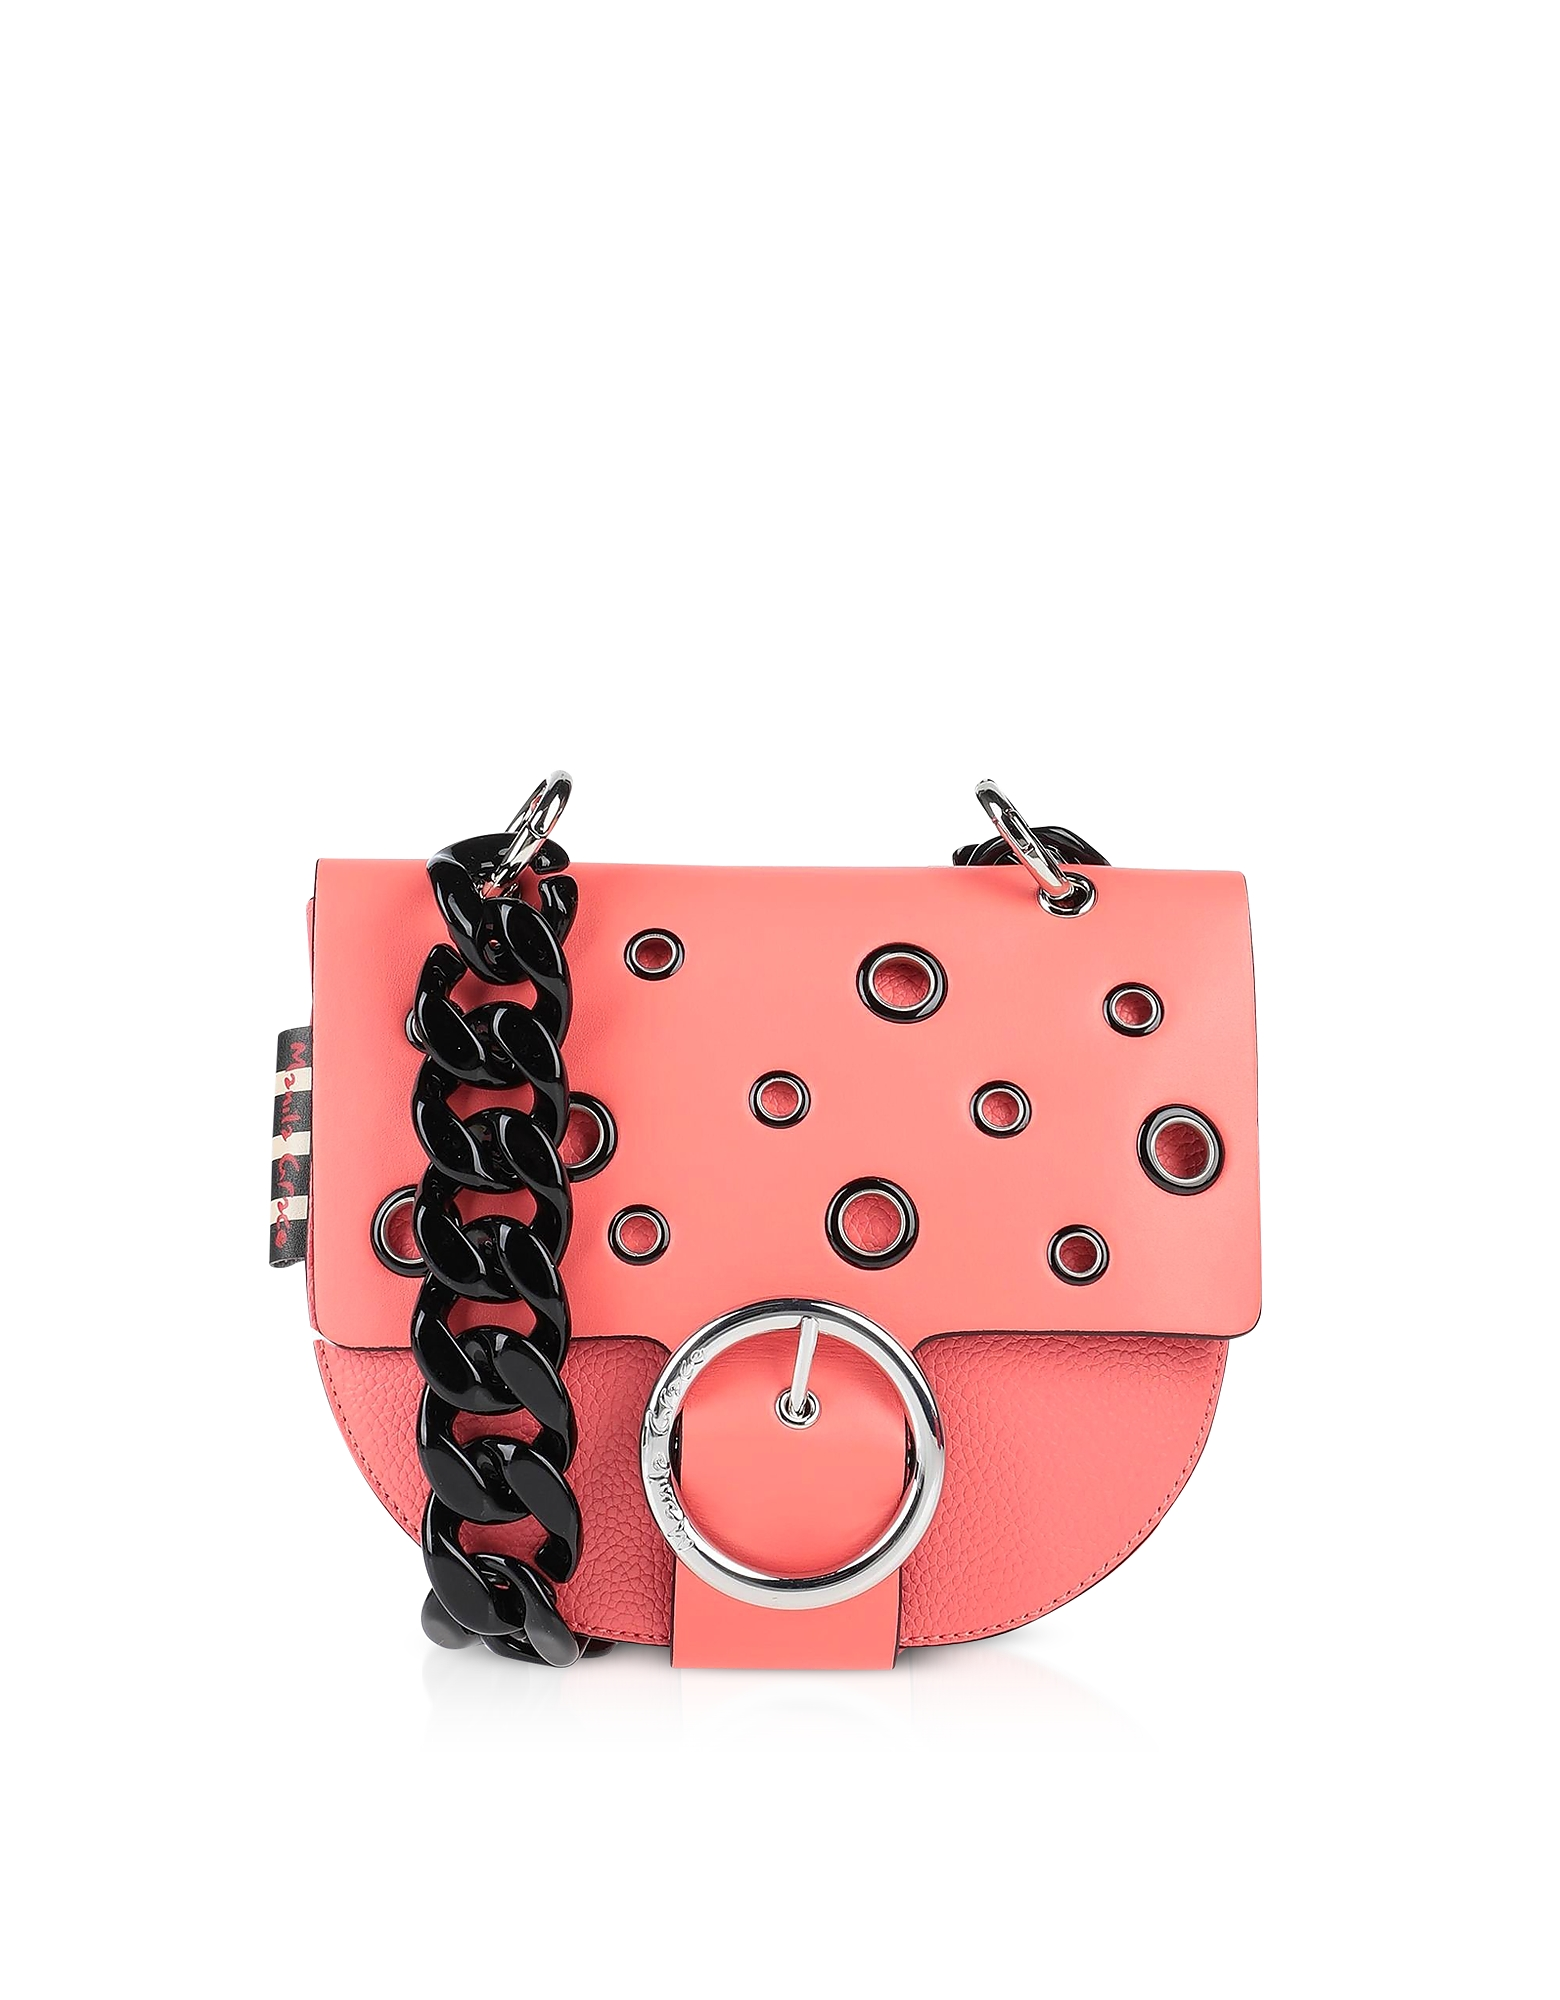 Manila Grace Designer Handbags, Pink Allover Eyelet Shoulder Bag